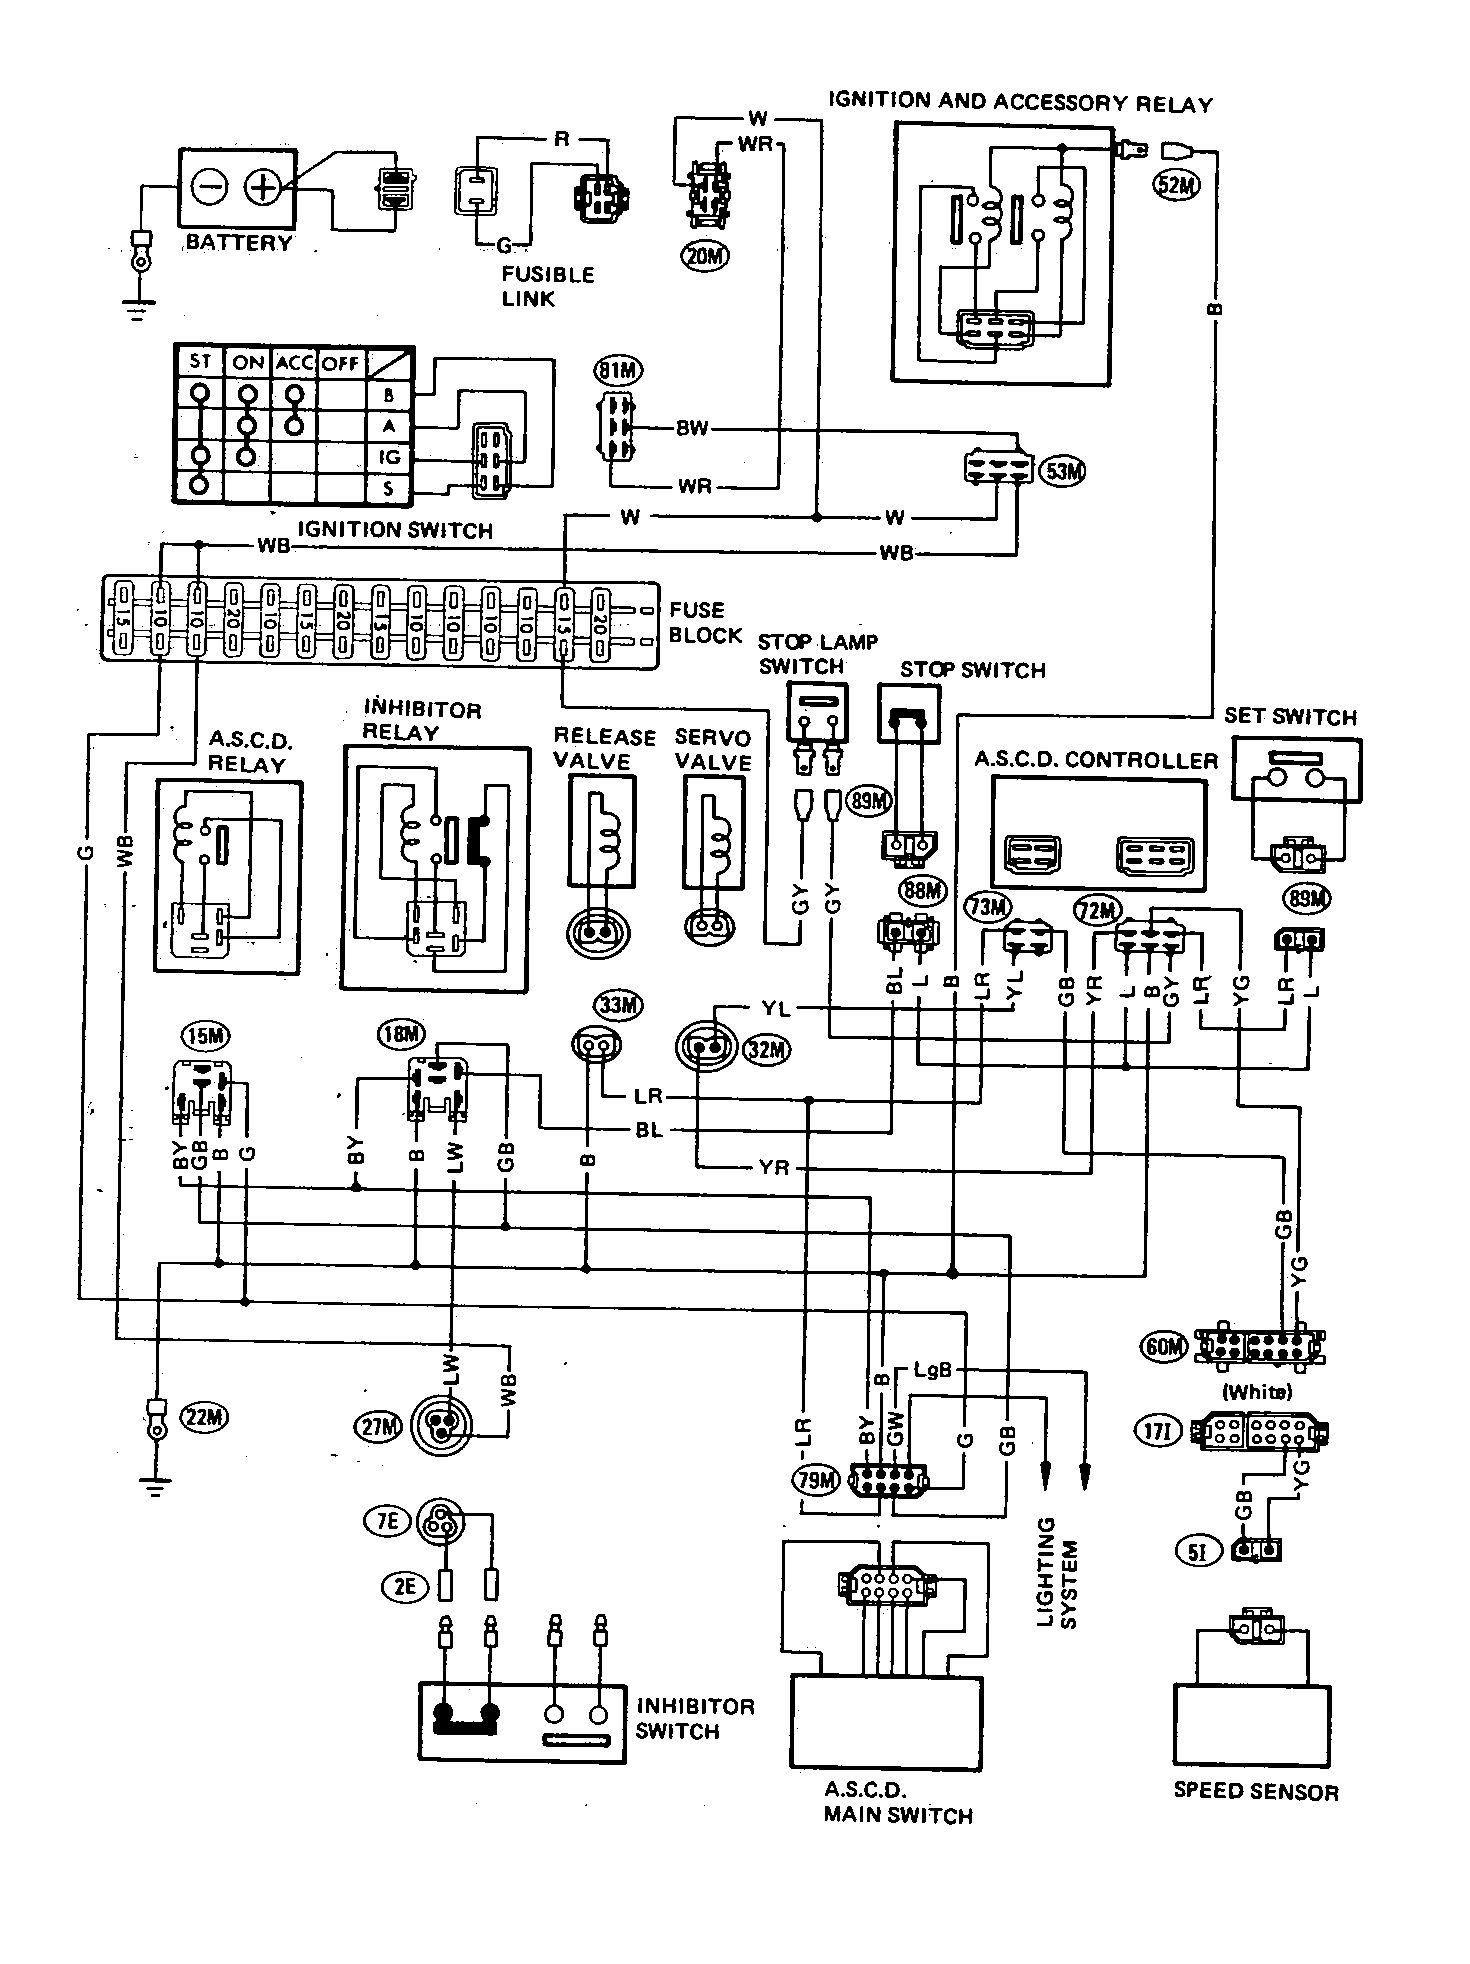 hight resolution of datsun 200sx 1980 wire diagram automatic speed control device